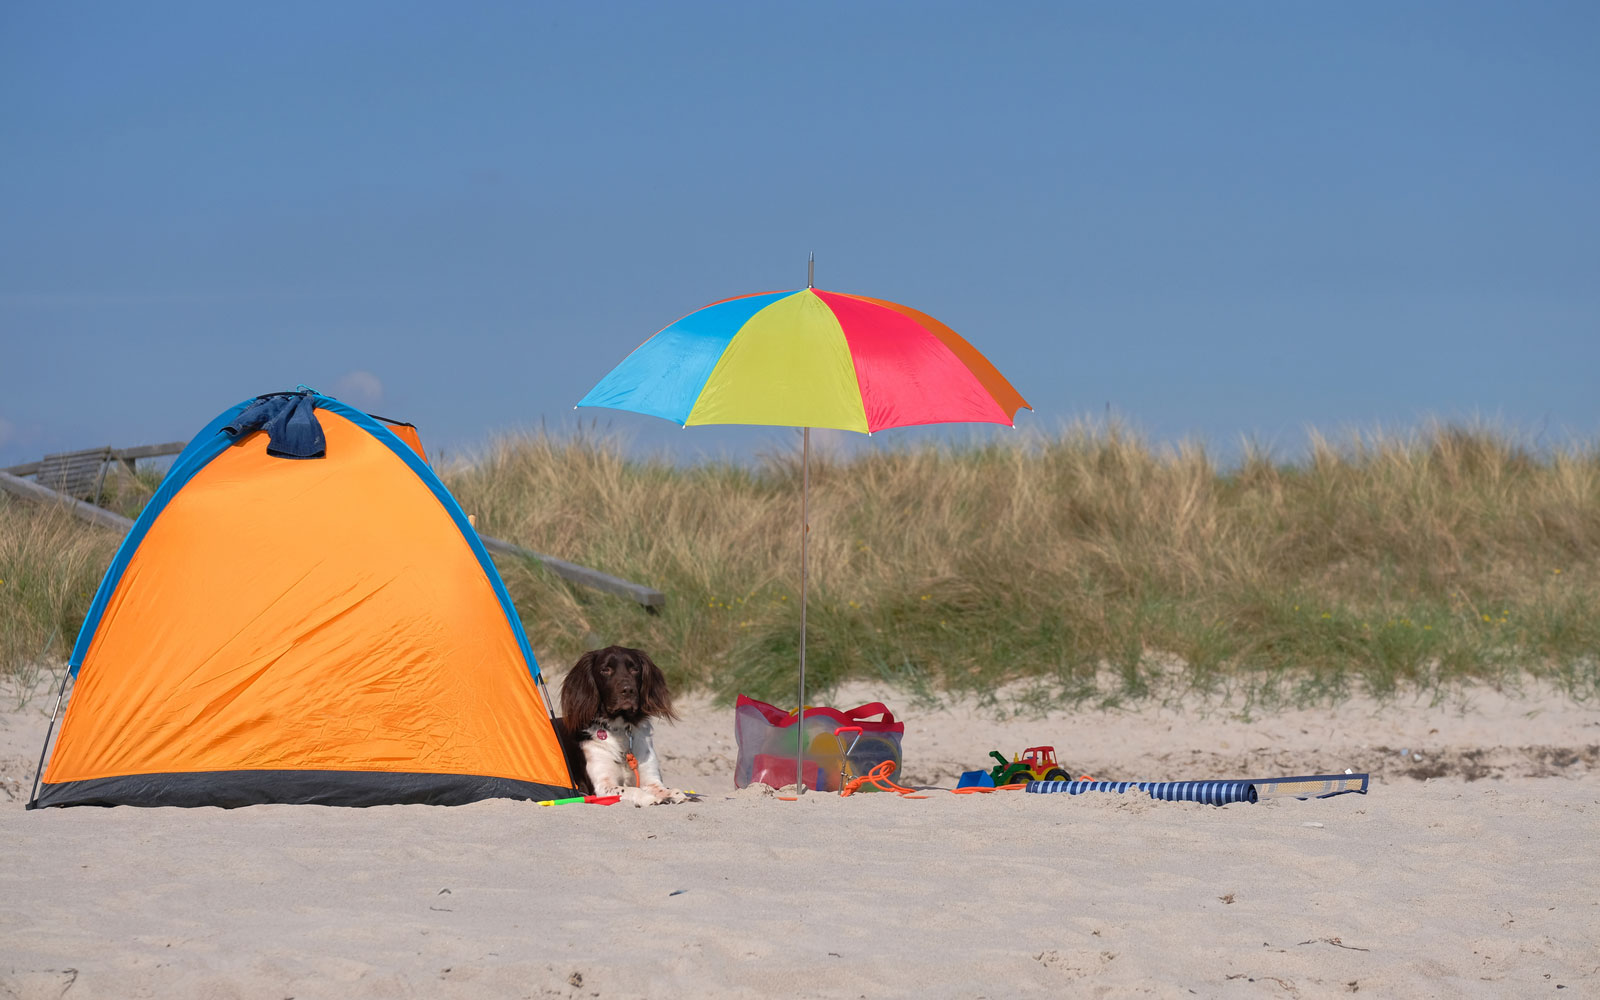 The Best Beach Canopies for Summer 2019